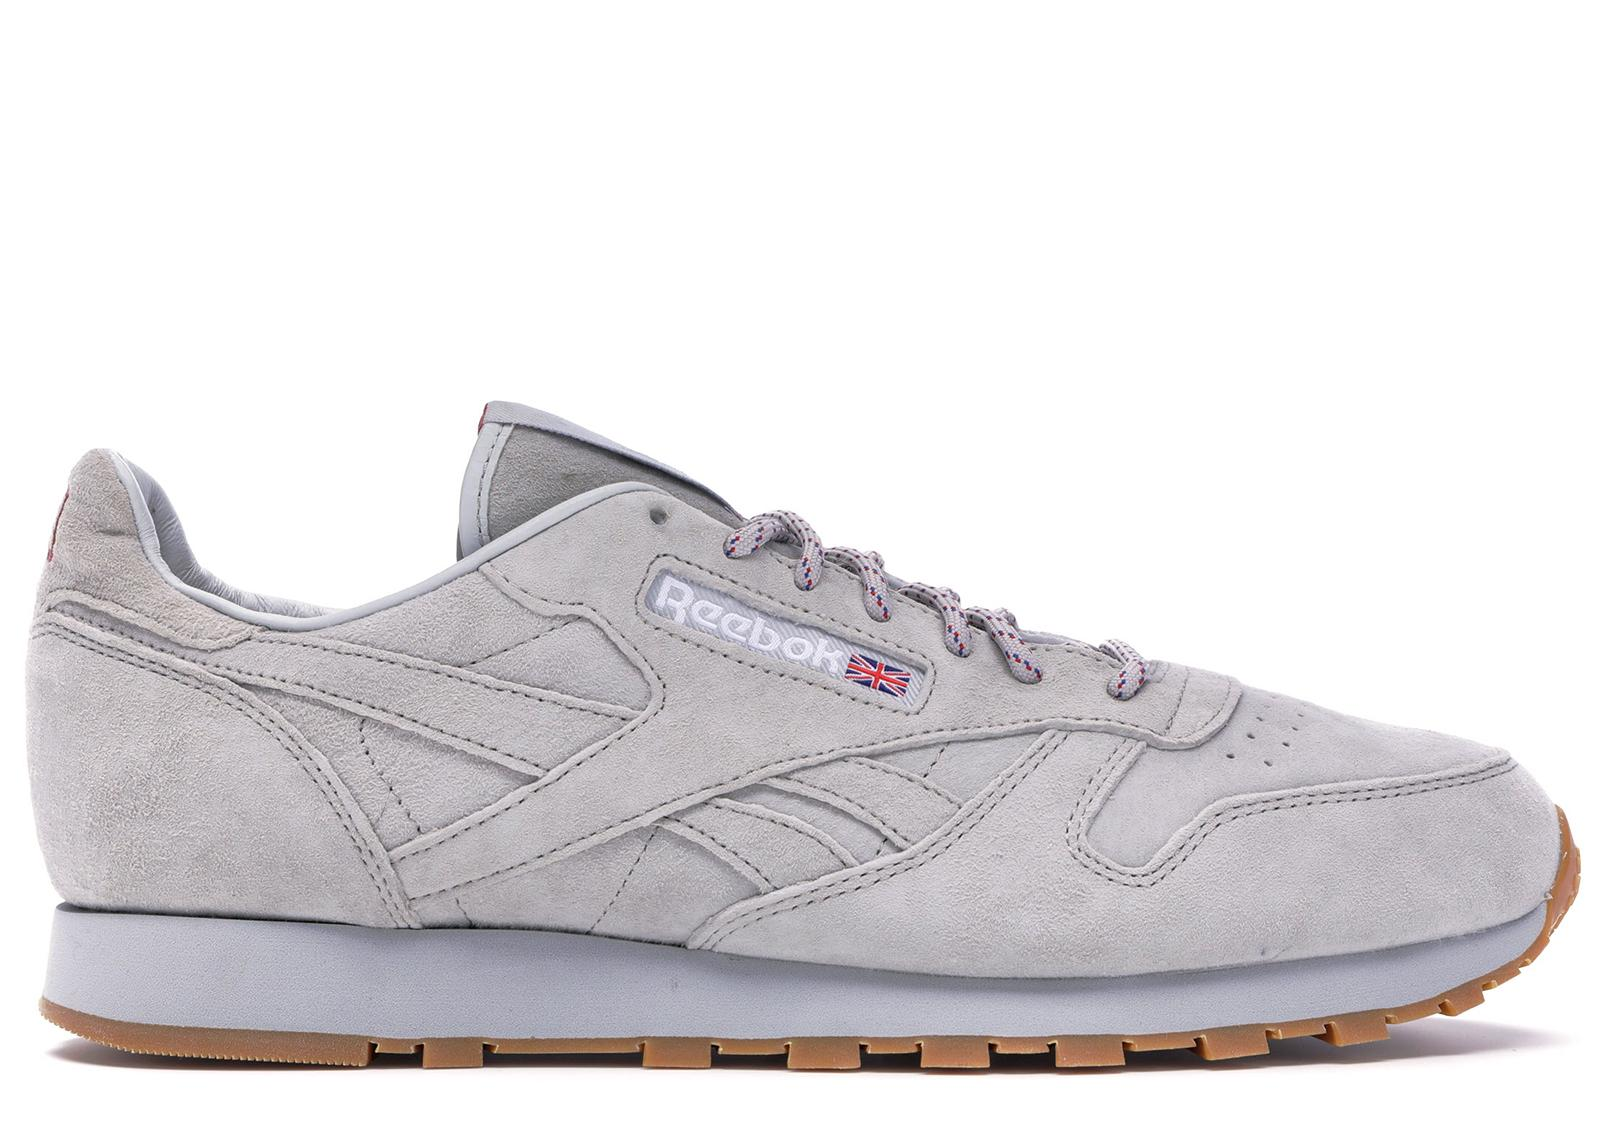 ddf14d6dc32 Lyst - Reebok Classic Leather Kendrick Lamar Red And Blue in Blue ...